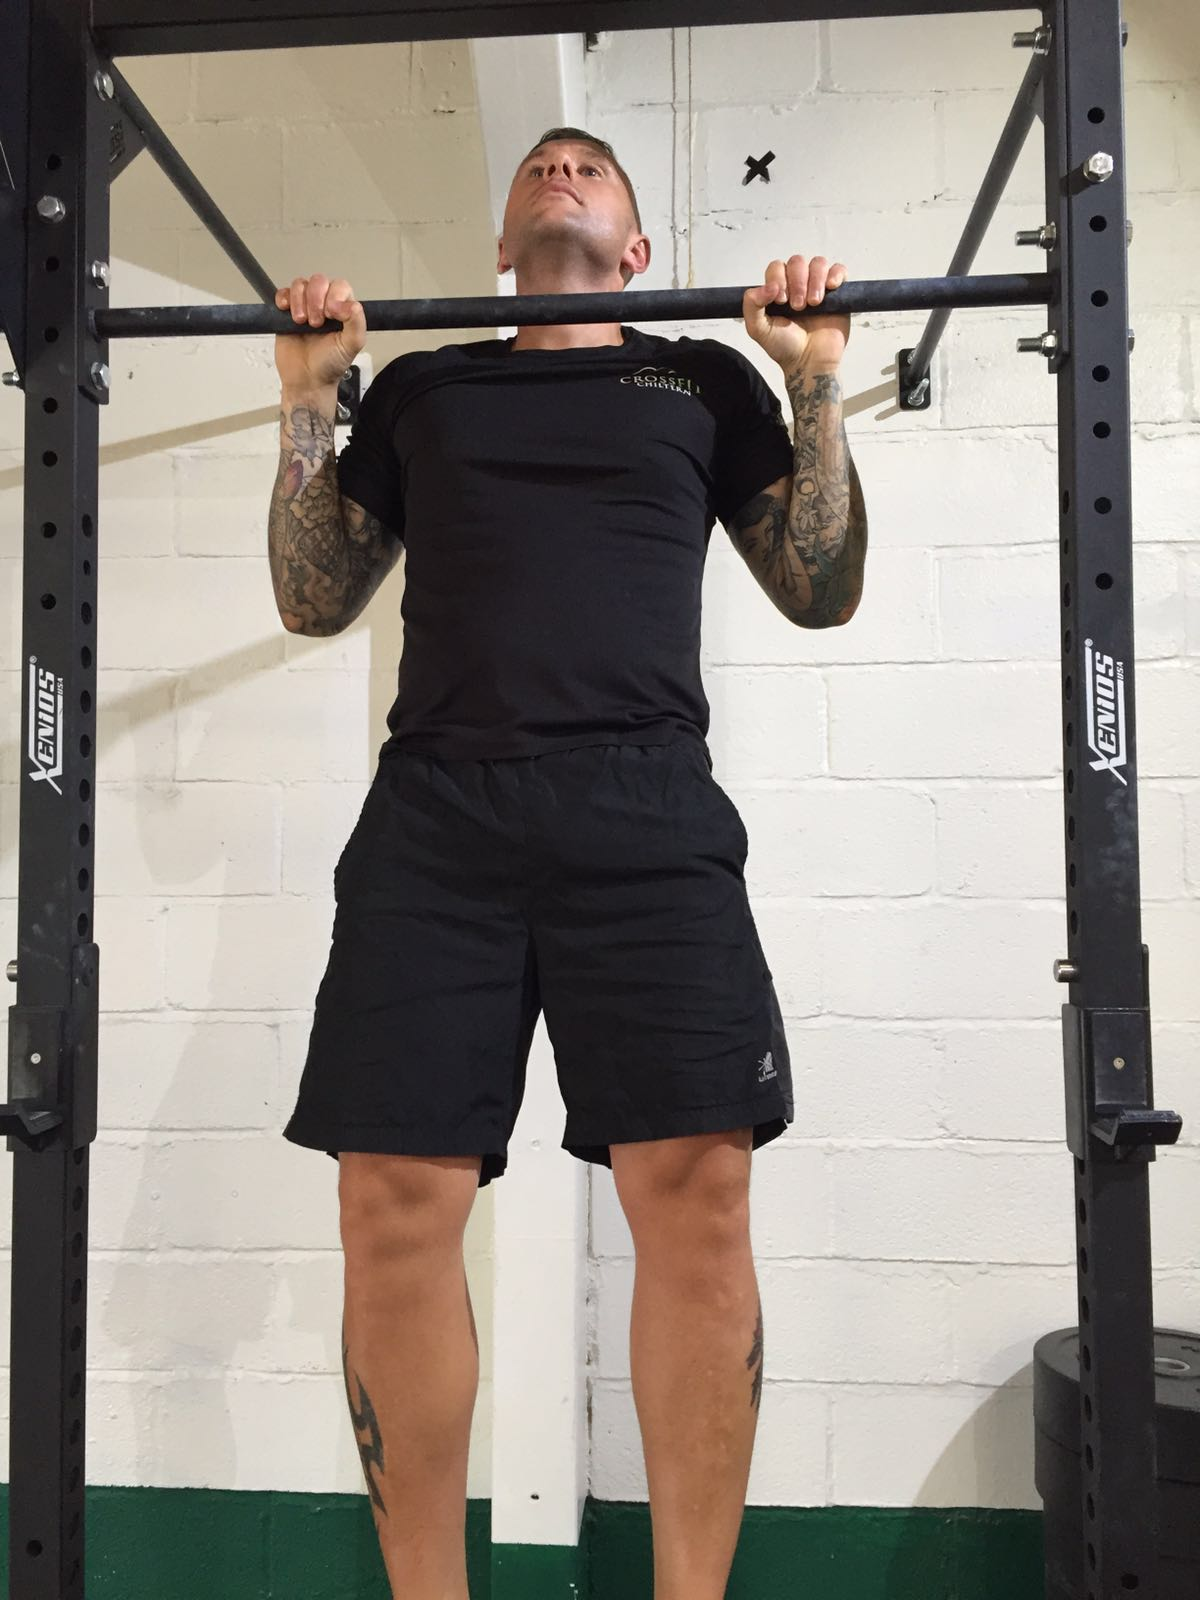 How to perform a pull up exercise, crossfit chiltern